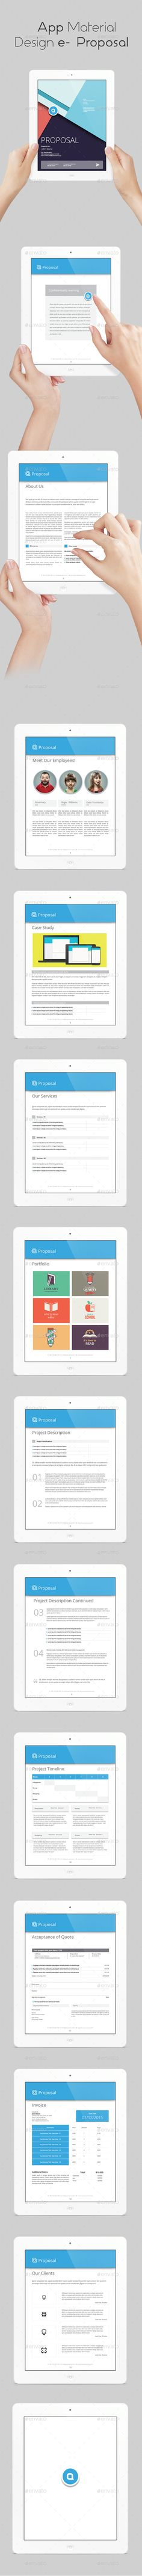 App Material Design eProposal Template #eproposal #ebook Download: http://graphicriver.net/item/app-material-design-e-proposal/10740979?ref=ksioks